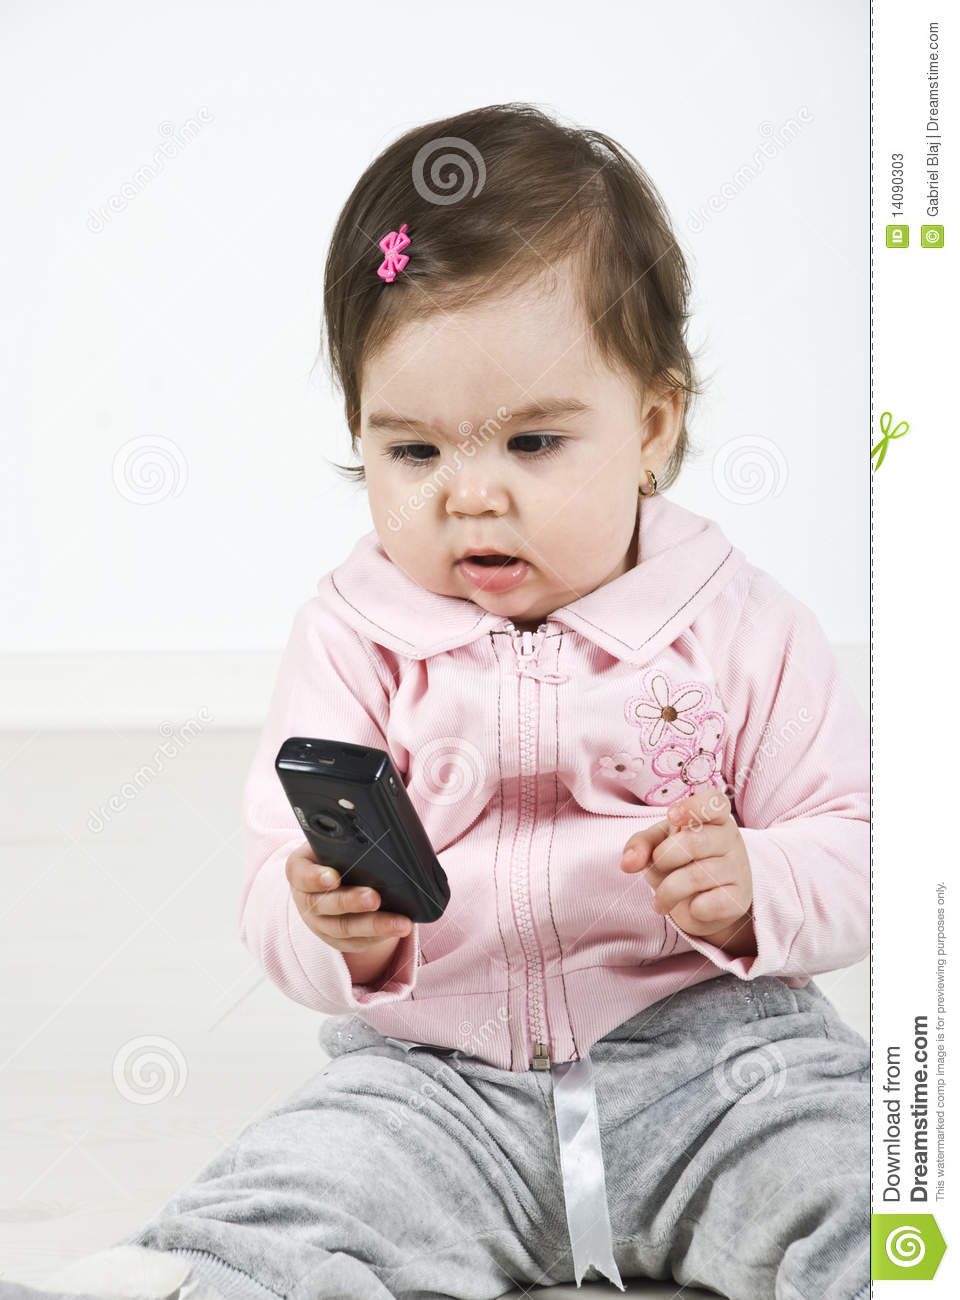 Baby girl holding a phone mobile and sitting on wooden floor check